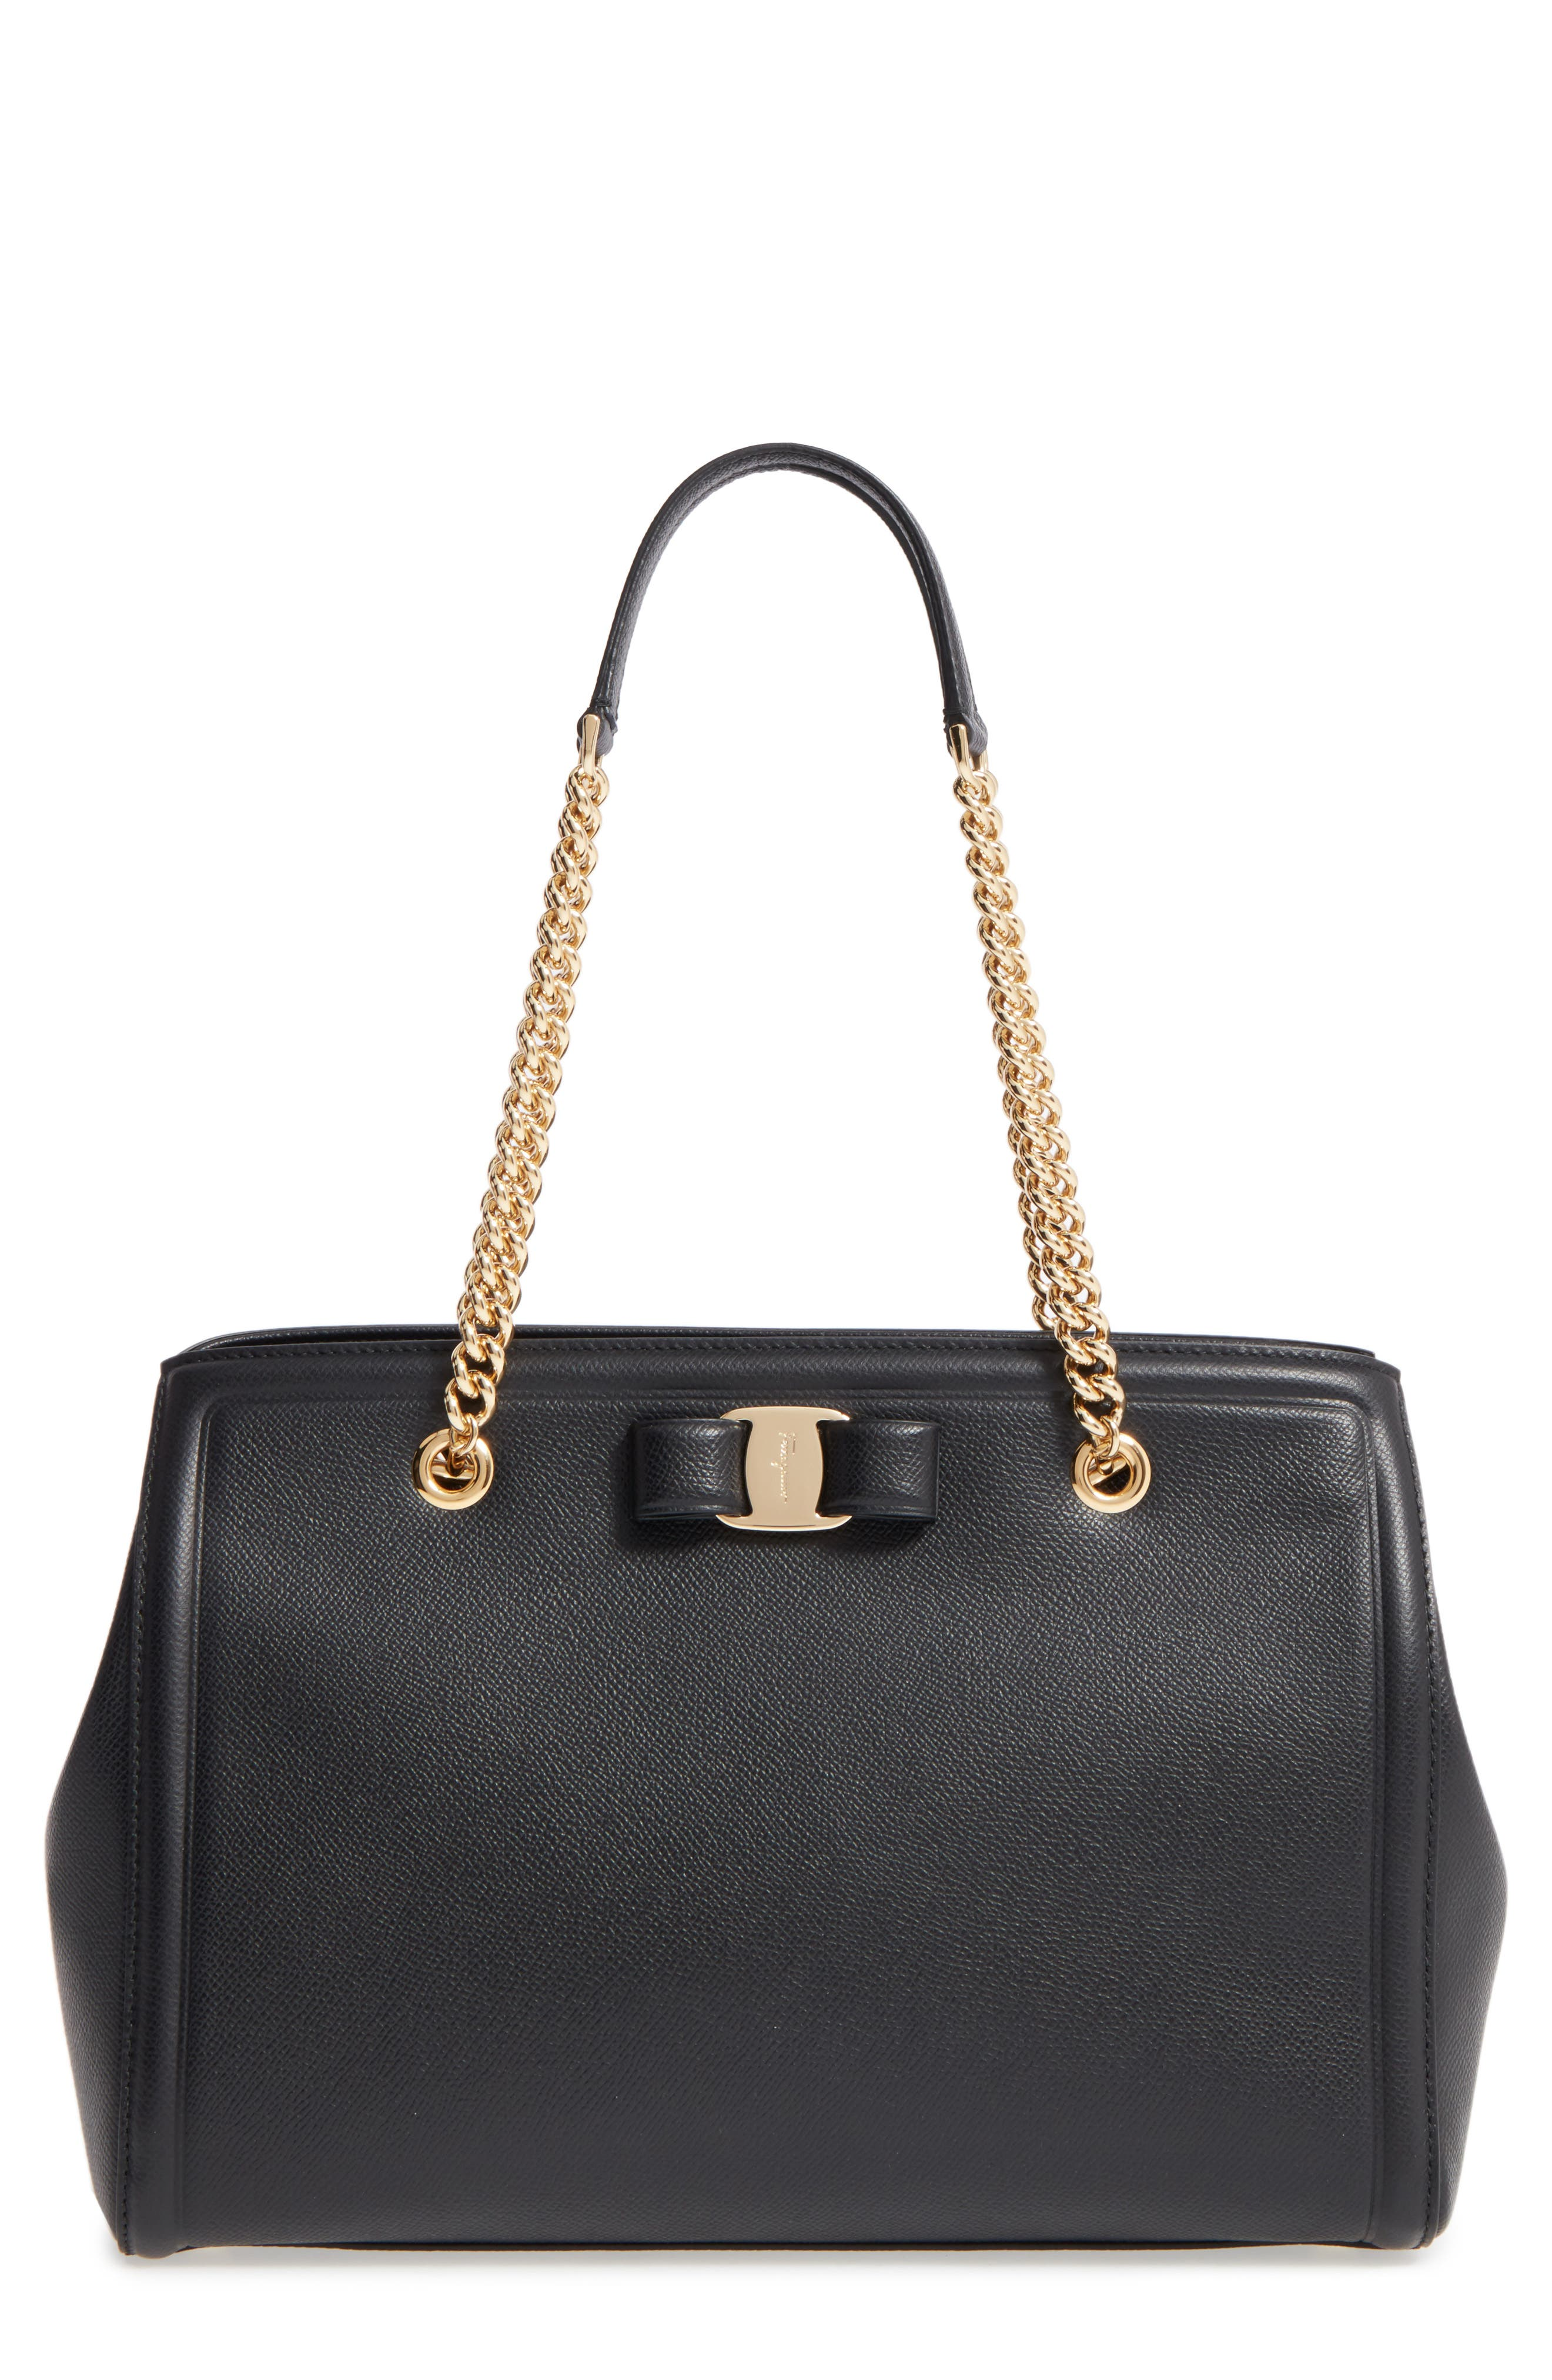 Salvatore Ferragamo Grained Leather Bow Tote